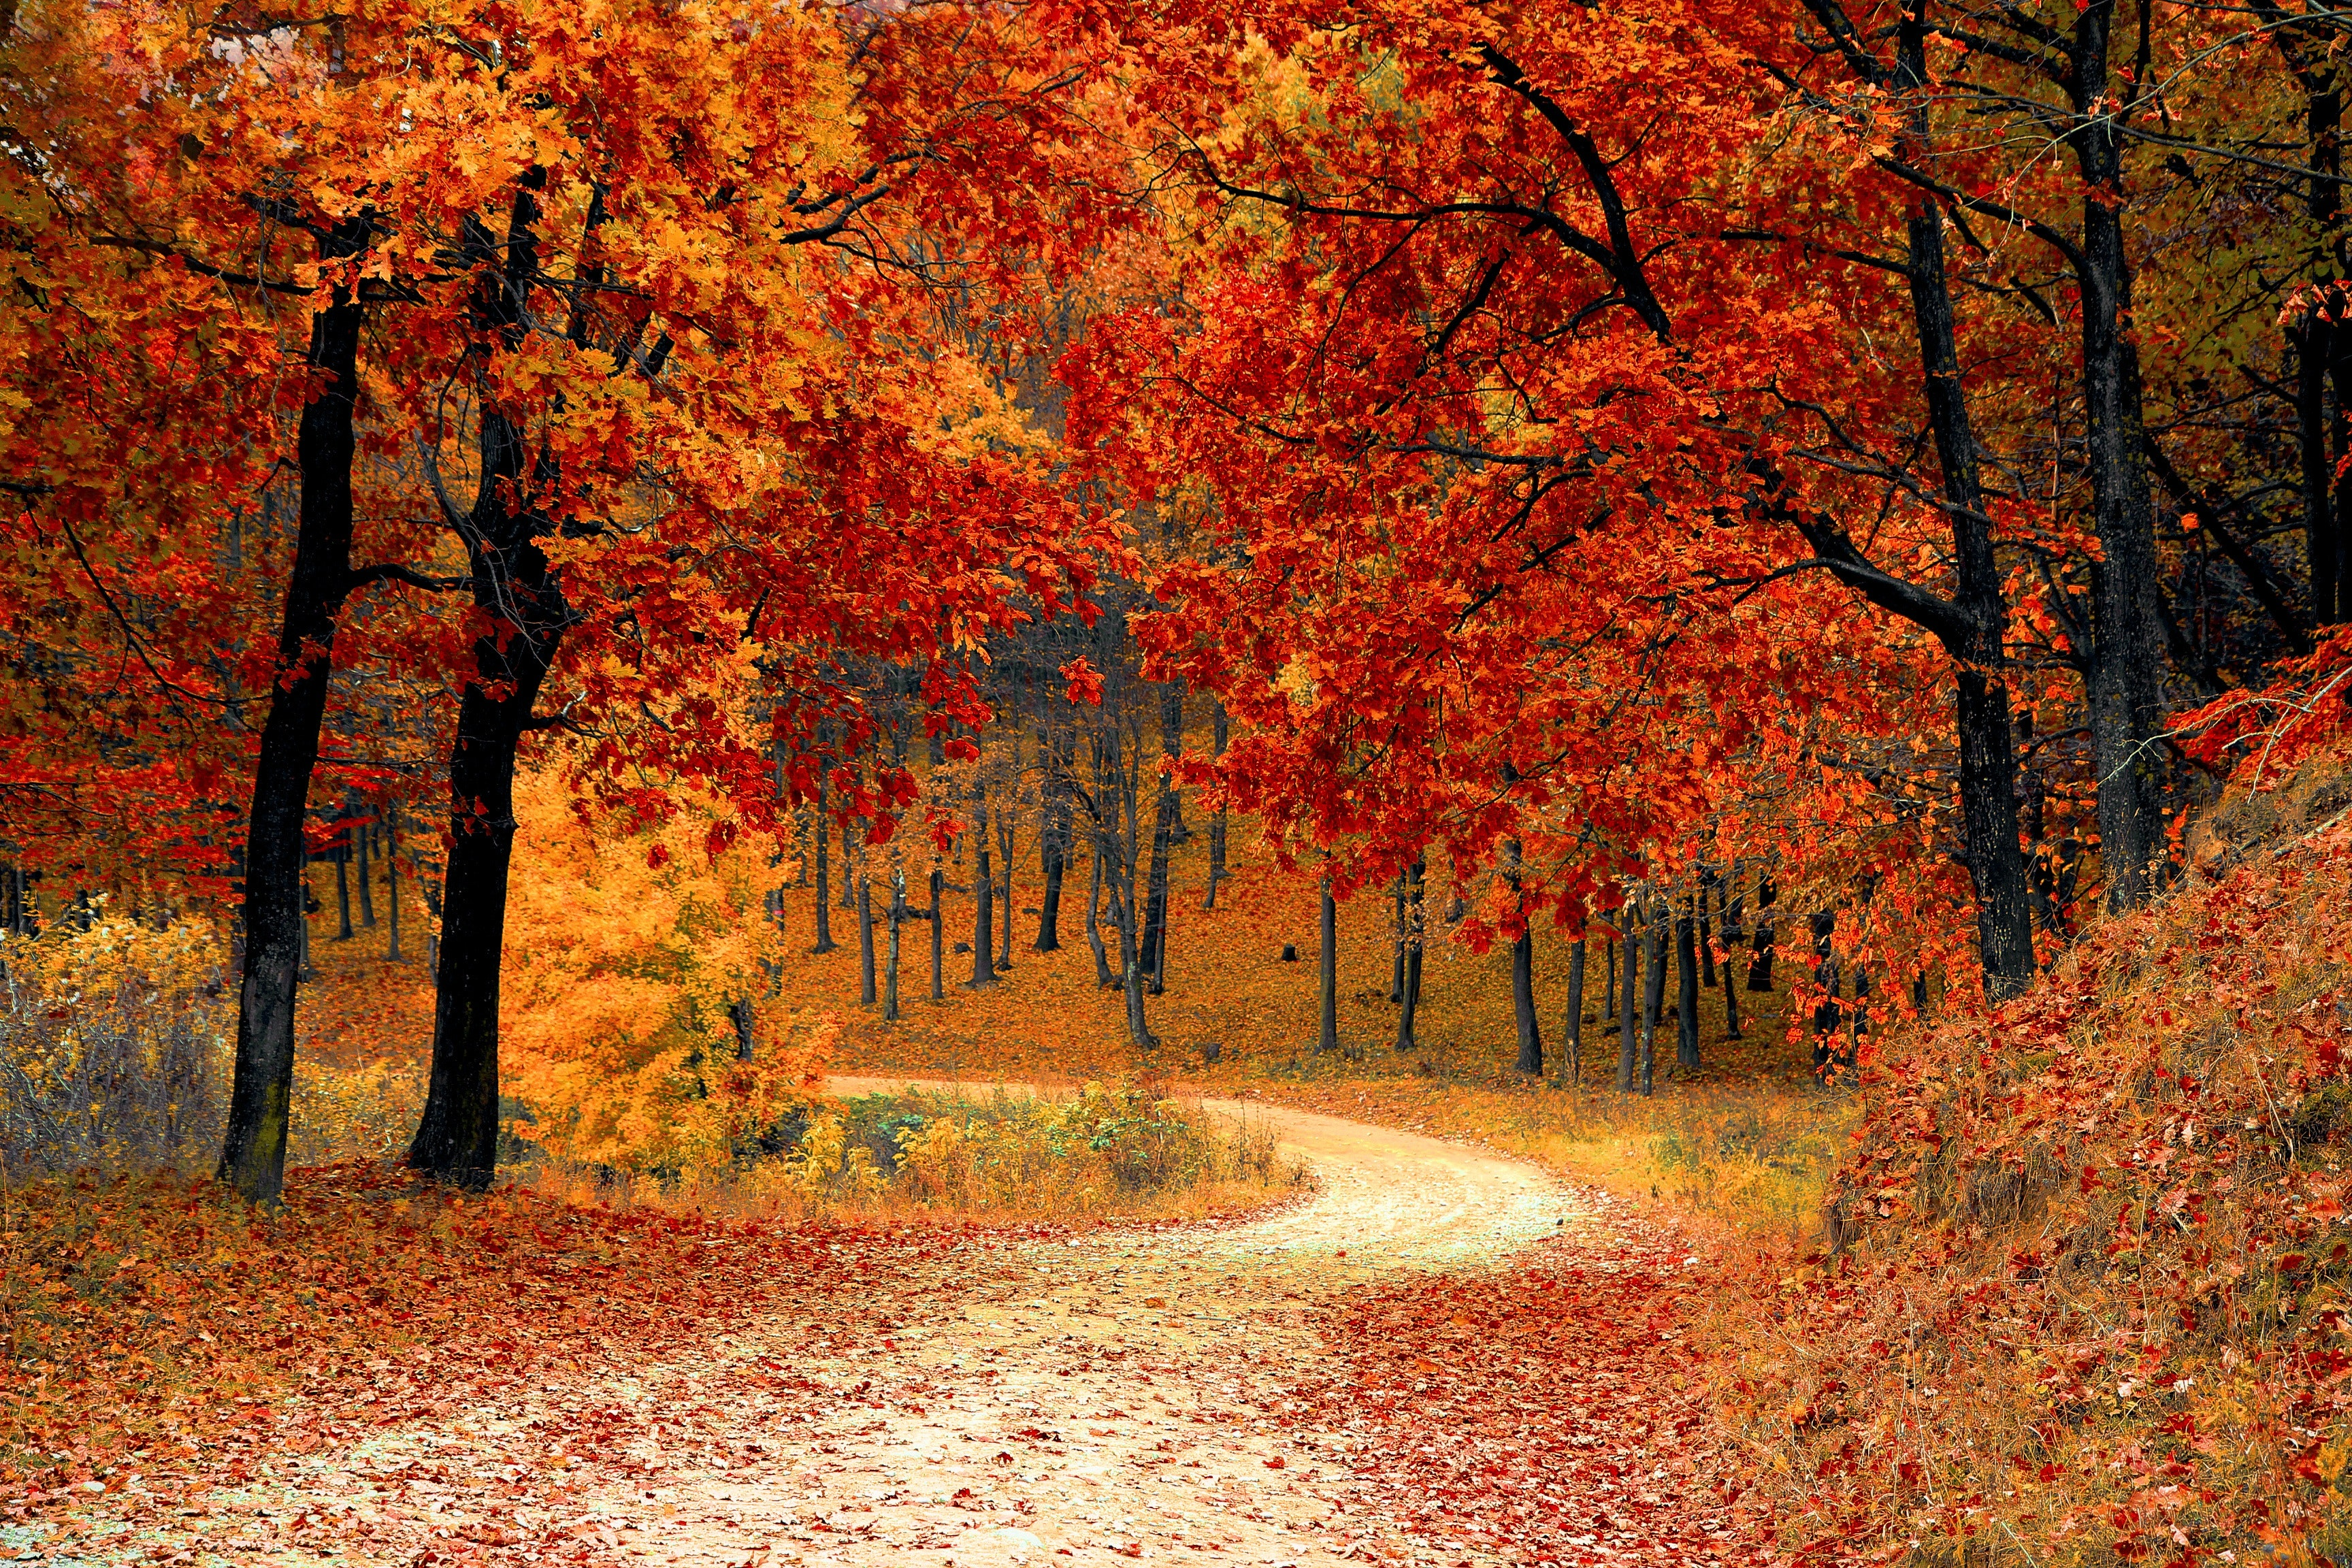 Download All Fall Images For Free And Use All Photos Of Autumn Scenes For Commercial Projects